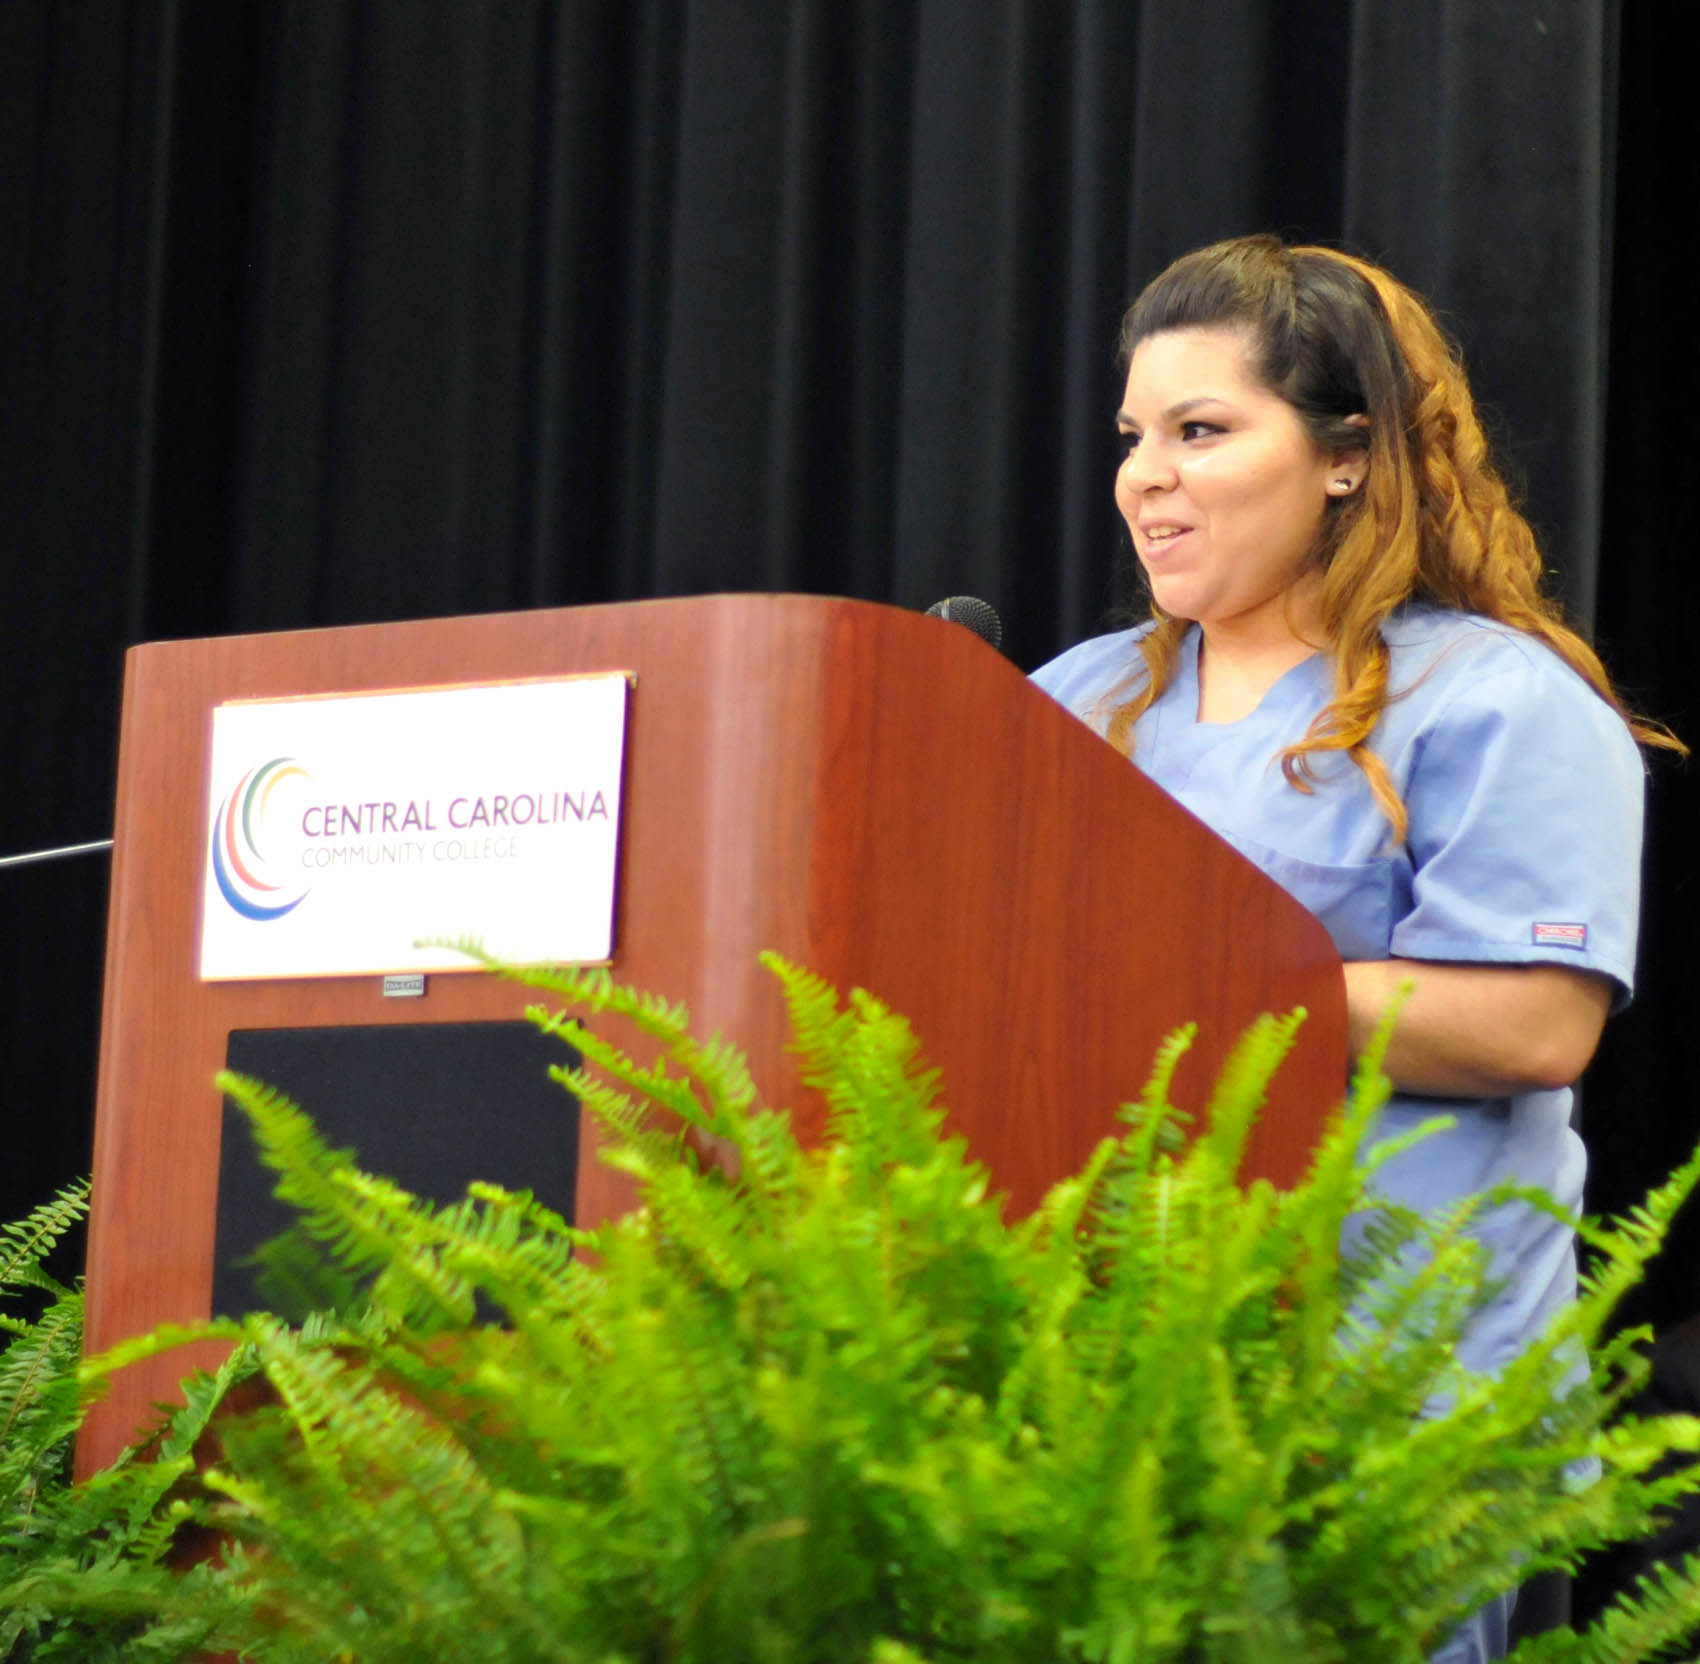 Click to enlarge,  Jessica Abrego, of Chatham County, was one of four student speakers at the Central Carolina Community College Continuing Education medical programs graduation. The event was held May 26 at the Dennis A. Wicker Civic Center in Sanford. For more information about Continuing Education medical programs, call Lennie Stephenson, CCCC's Director of Continuing Education medical programs, at 910-814-8833 or email lstephenson@cccc.edu.